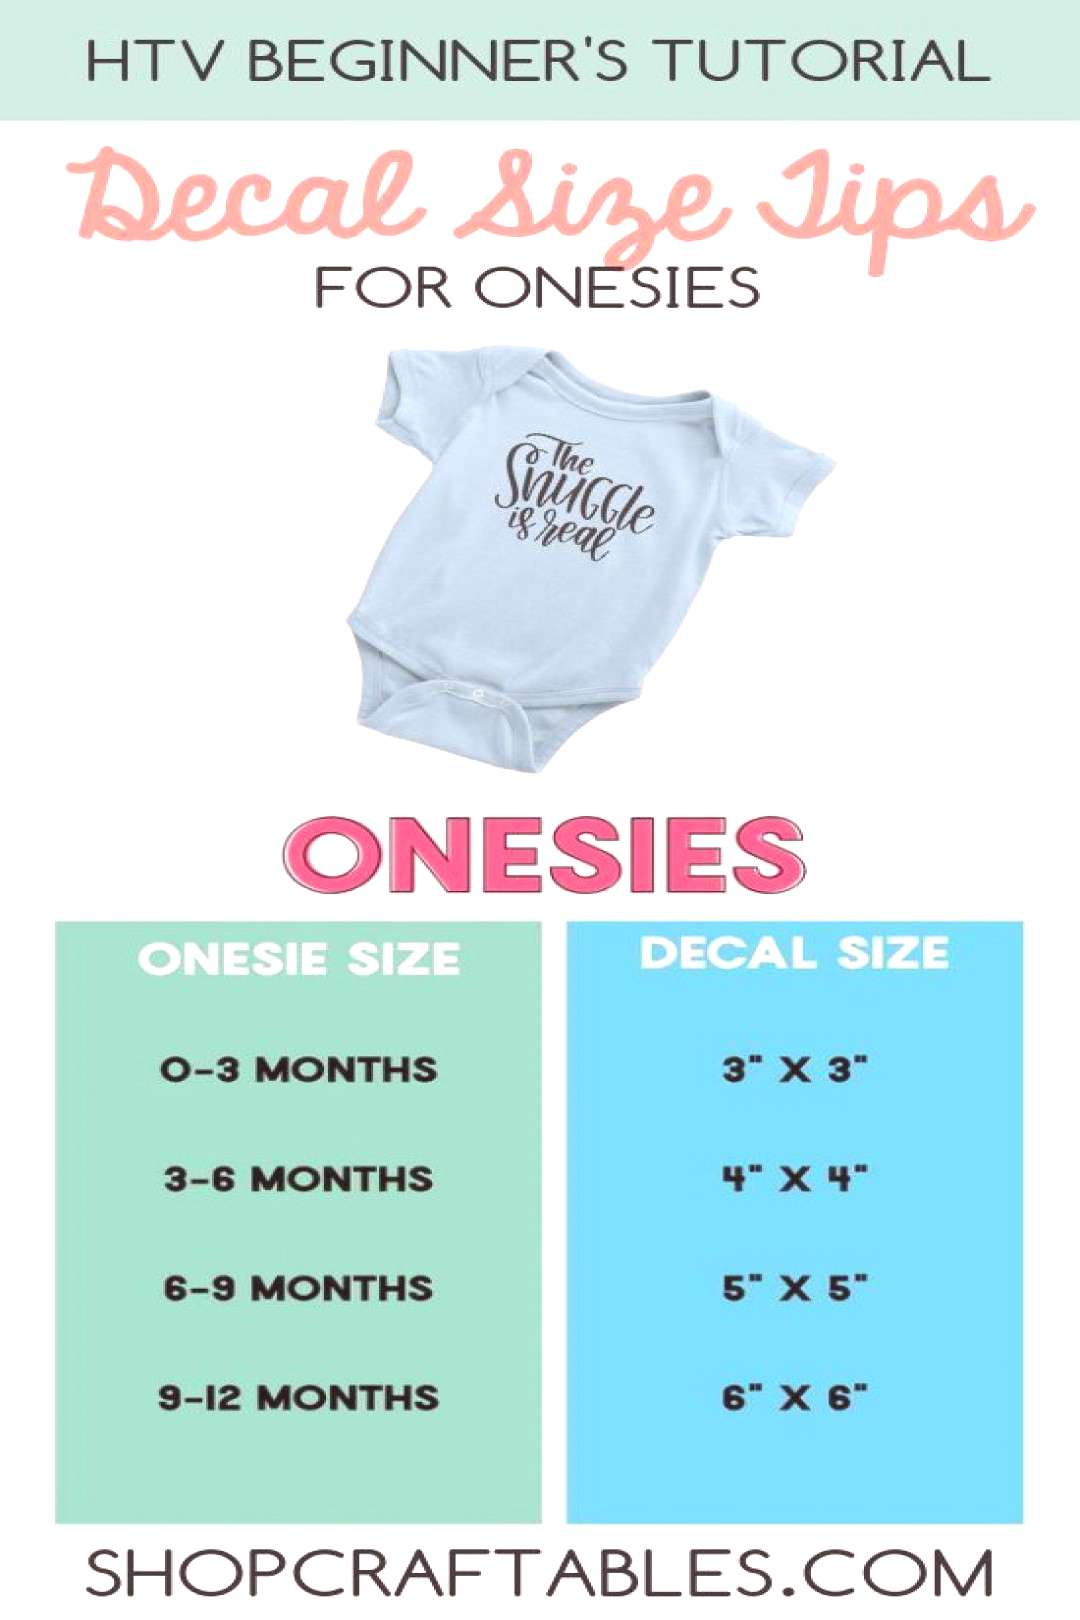 Beginners Tutorial Decal Size Tips for T-Shirts, Totes and Onesies - Cricut Maker - These sizes